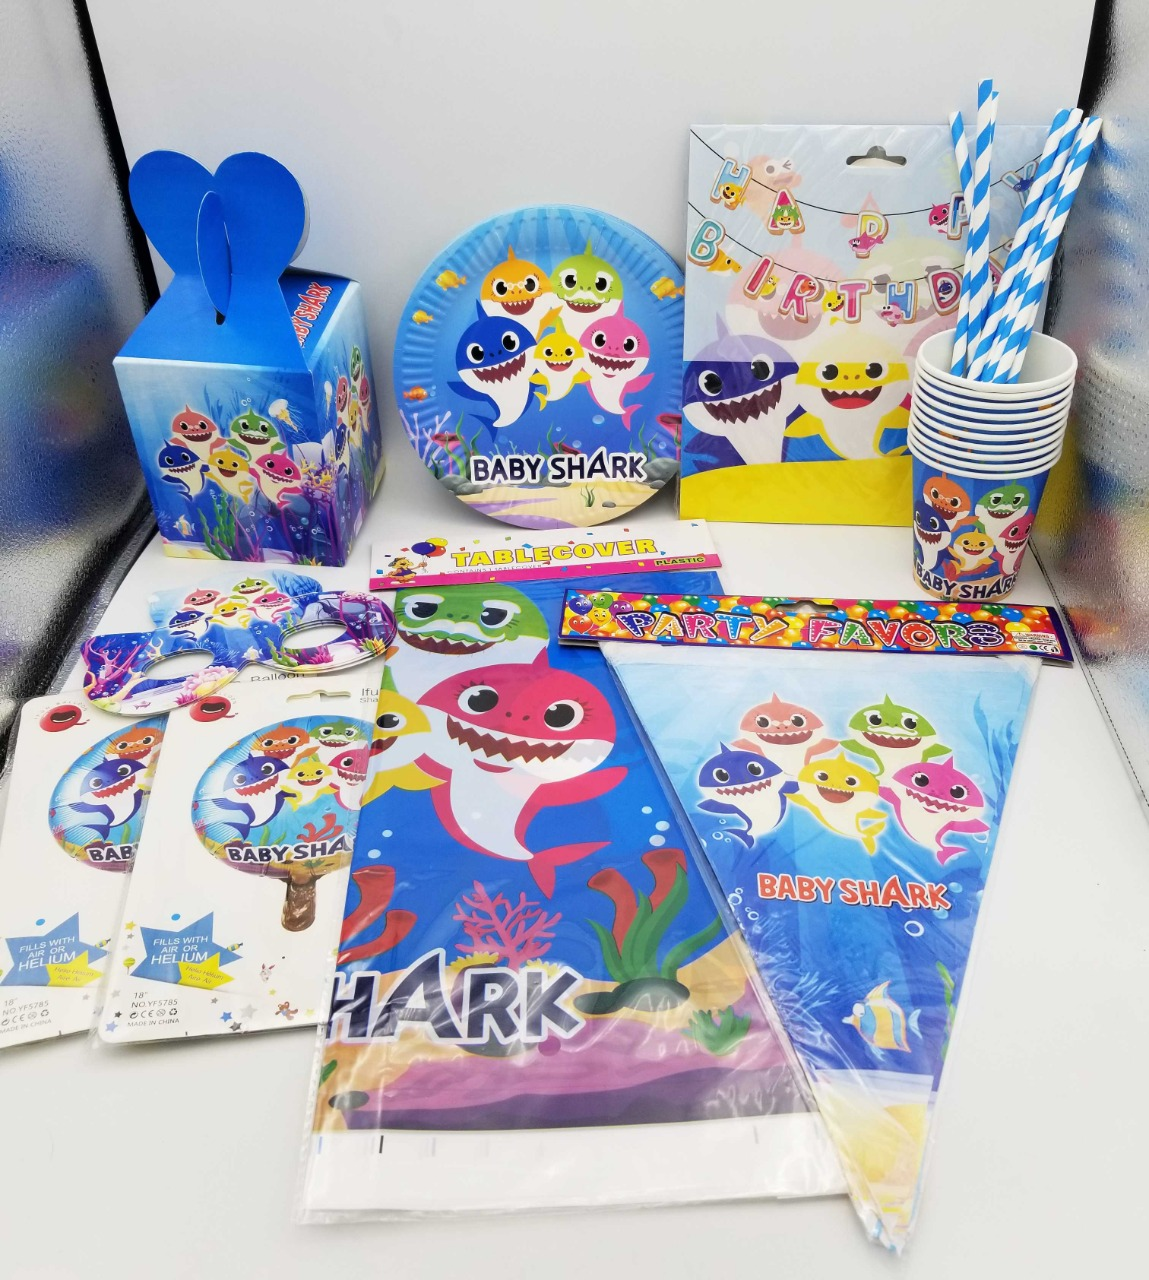 Baby Shark Theme For Birthday Party Supplies 10 Person Buy Online At Best Prices In Pakistan Daraz Pk